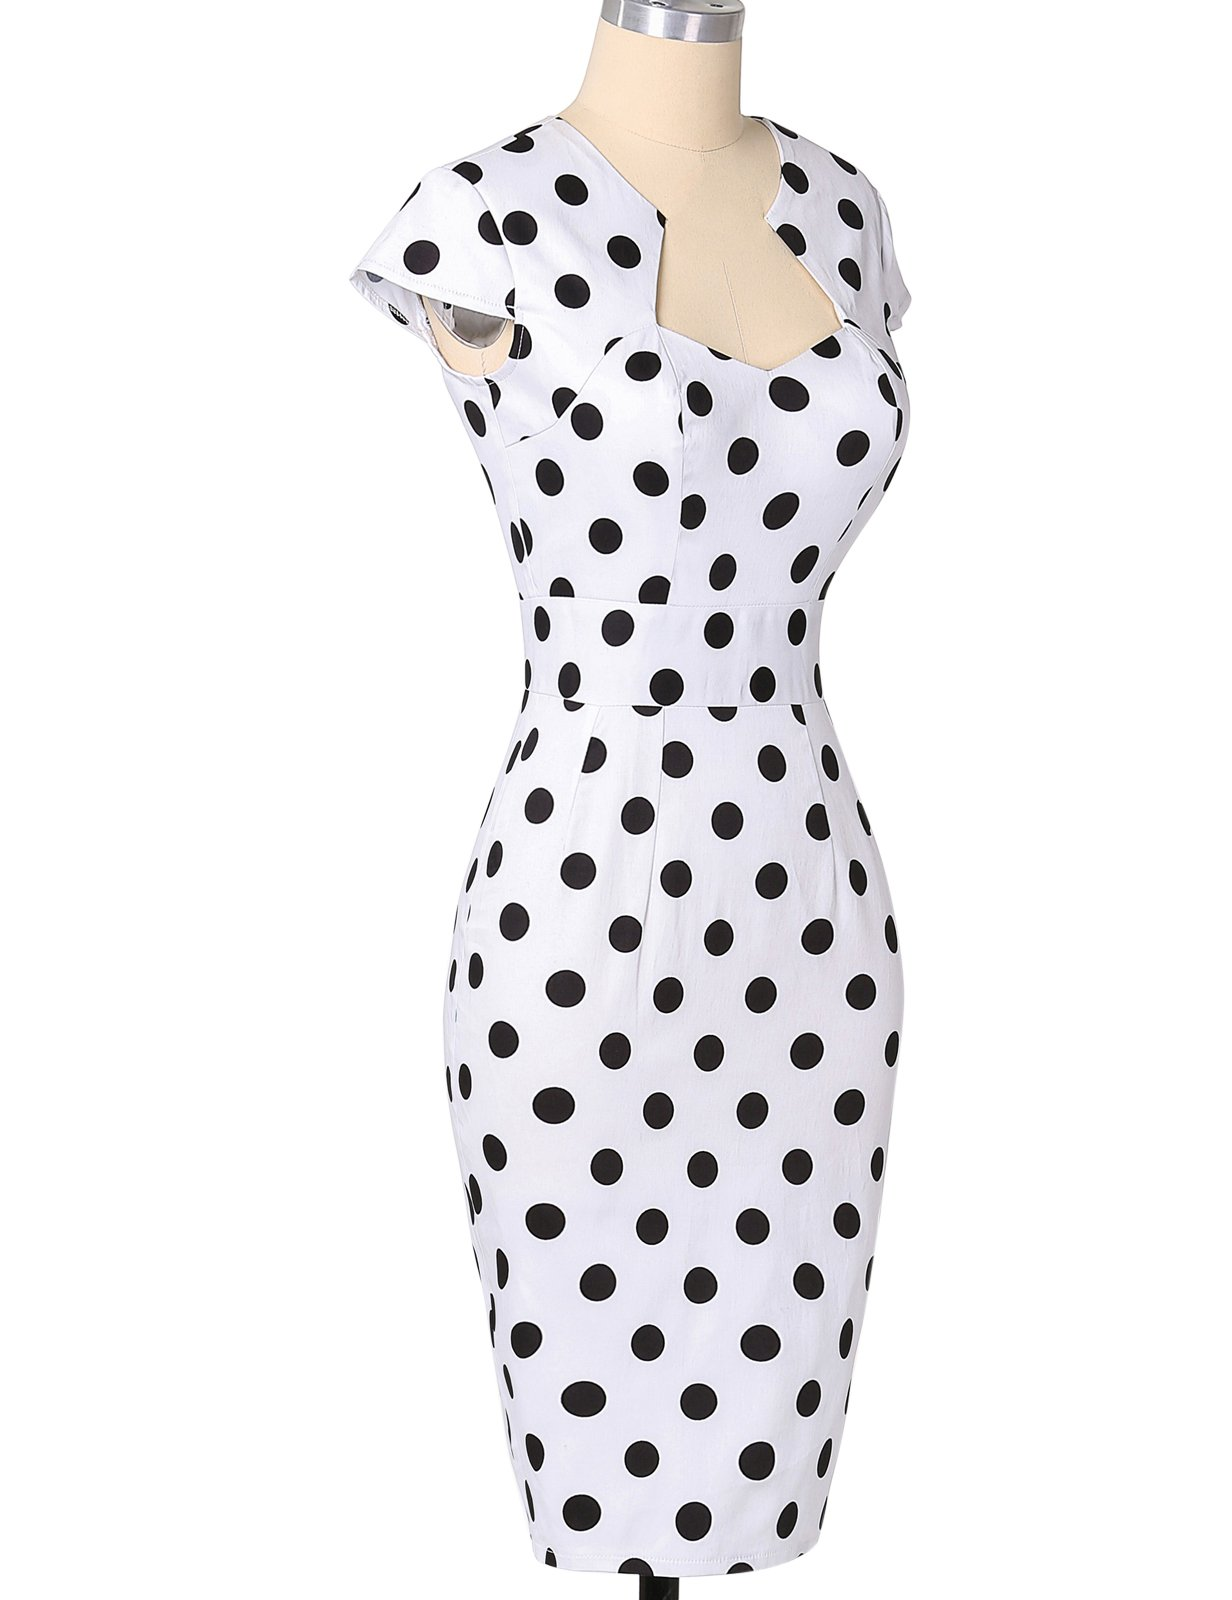 Polka Dots Vintage Ball Prom Dress Cap Sleeve White S CL7597-1 by Belle Poque Retro Dress (Image #5)